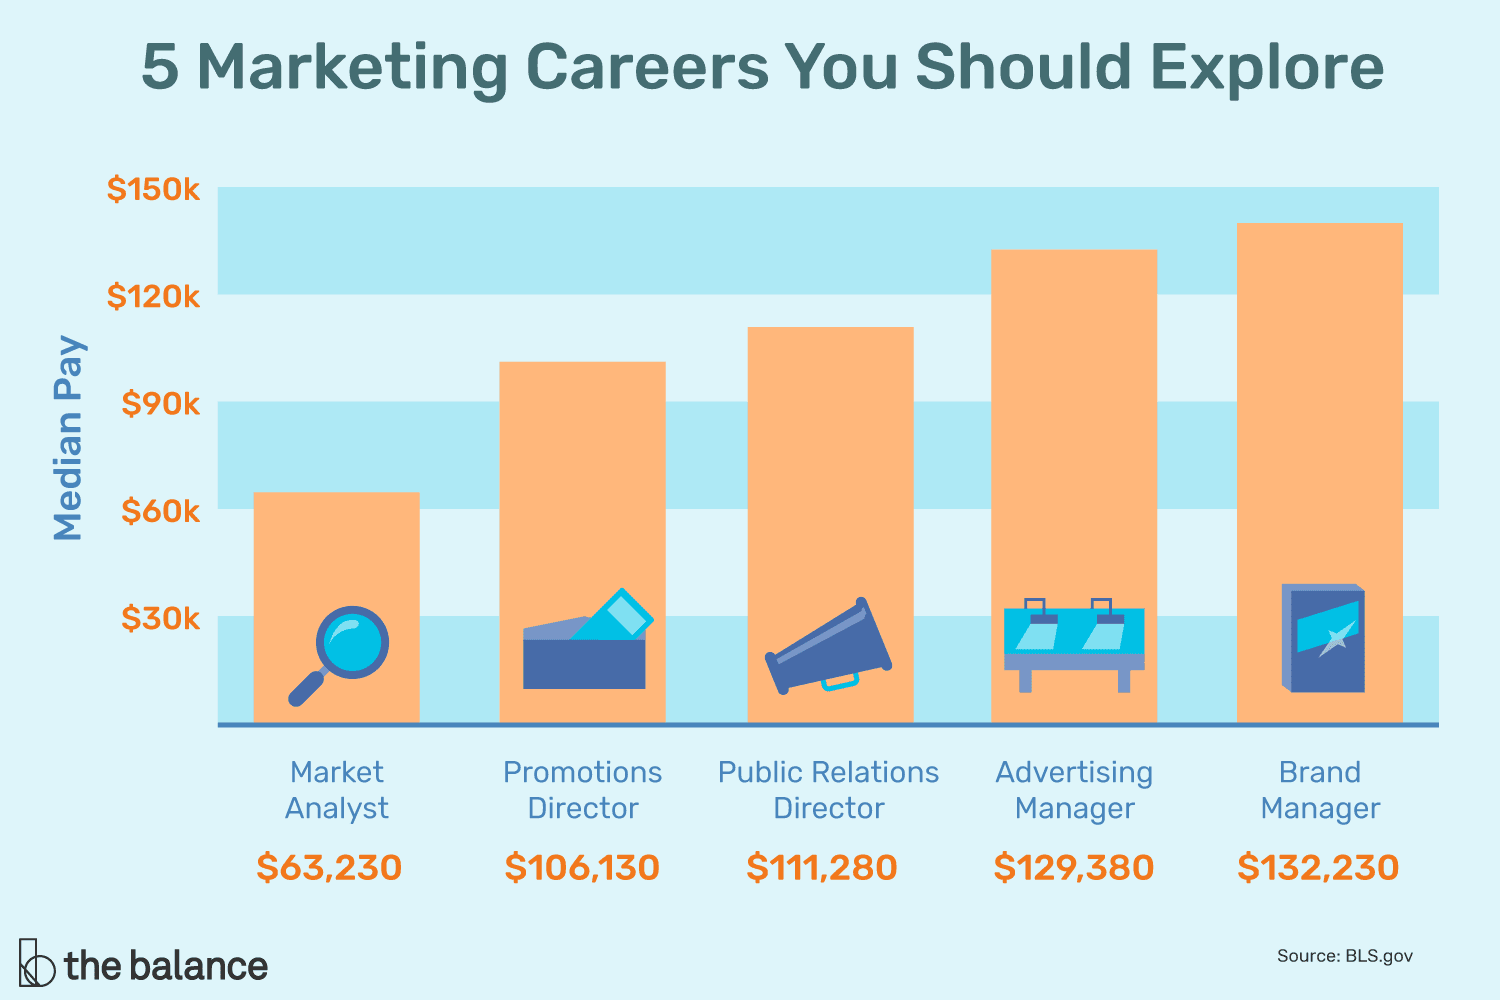 5 Marketing Careers Where You Can Find Opportunities